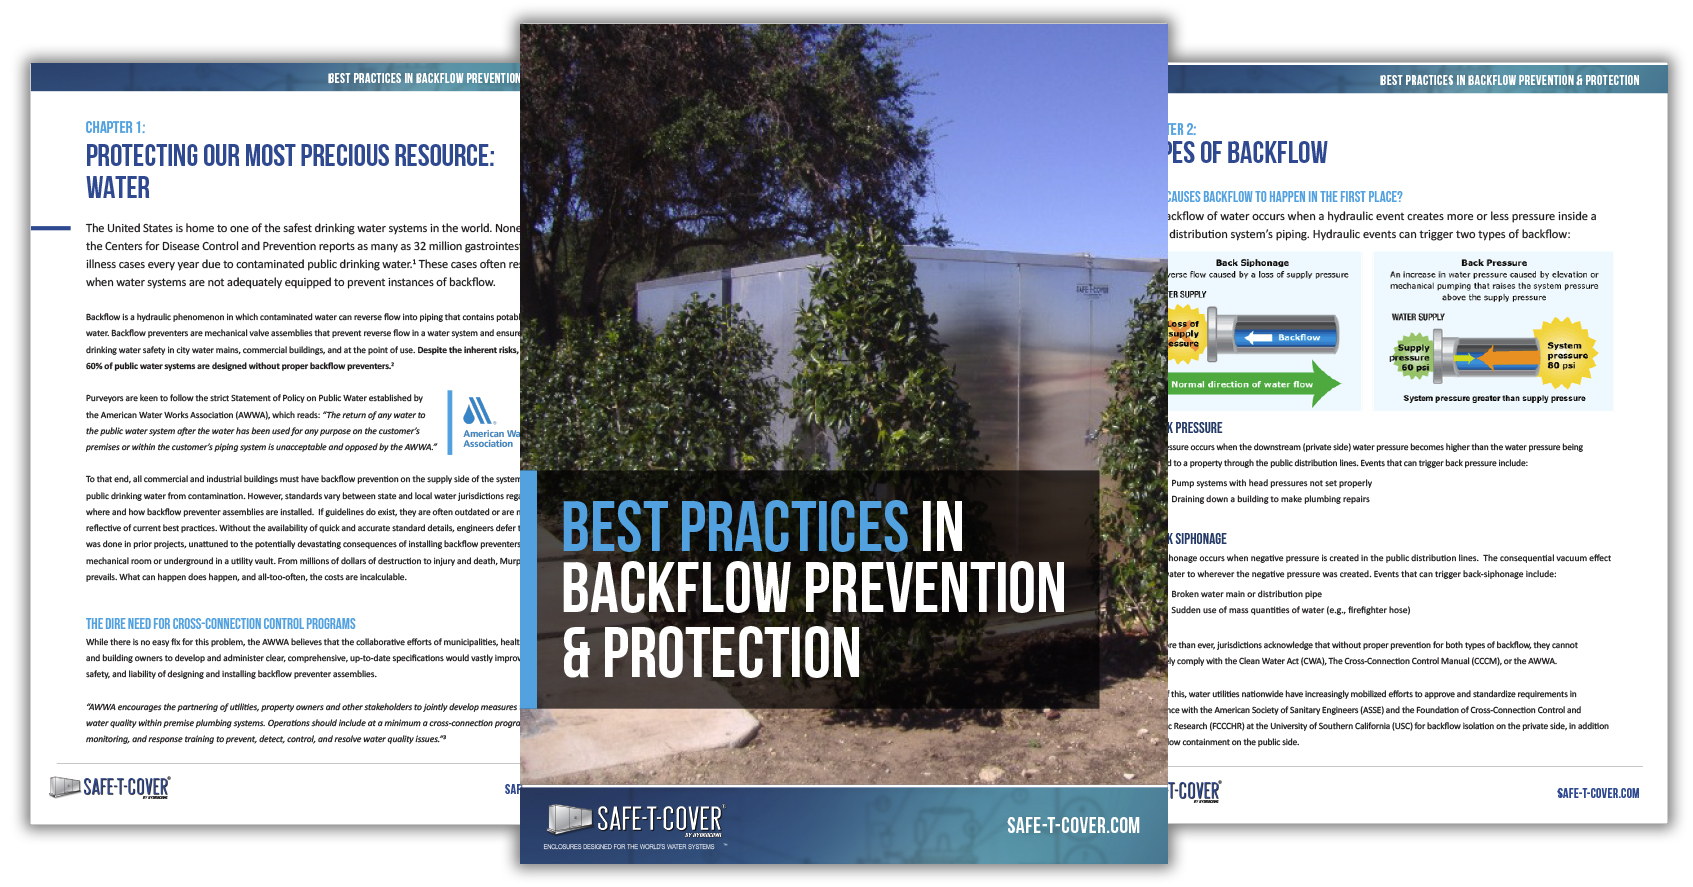 Best Practices in Backflow